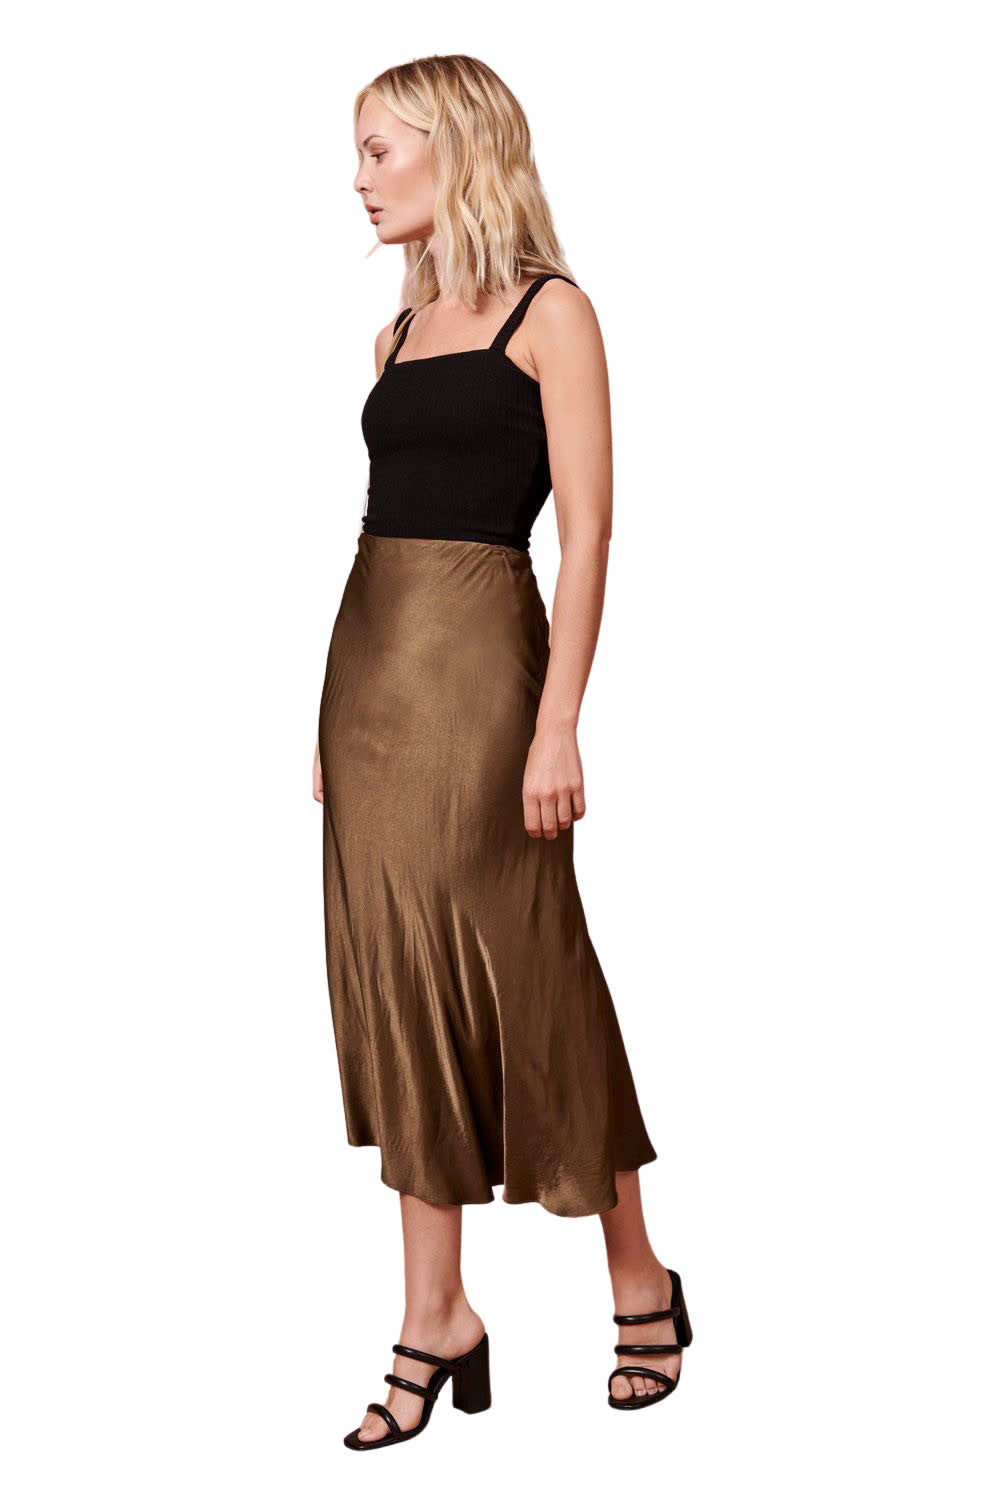 Shiny Hunter Green Diana Skirt - Side